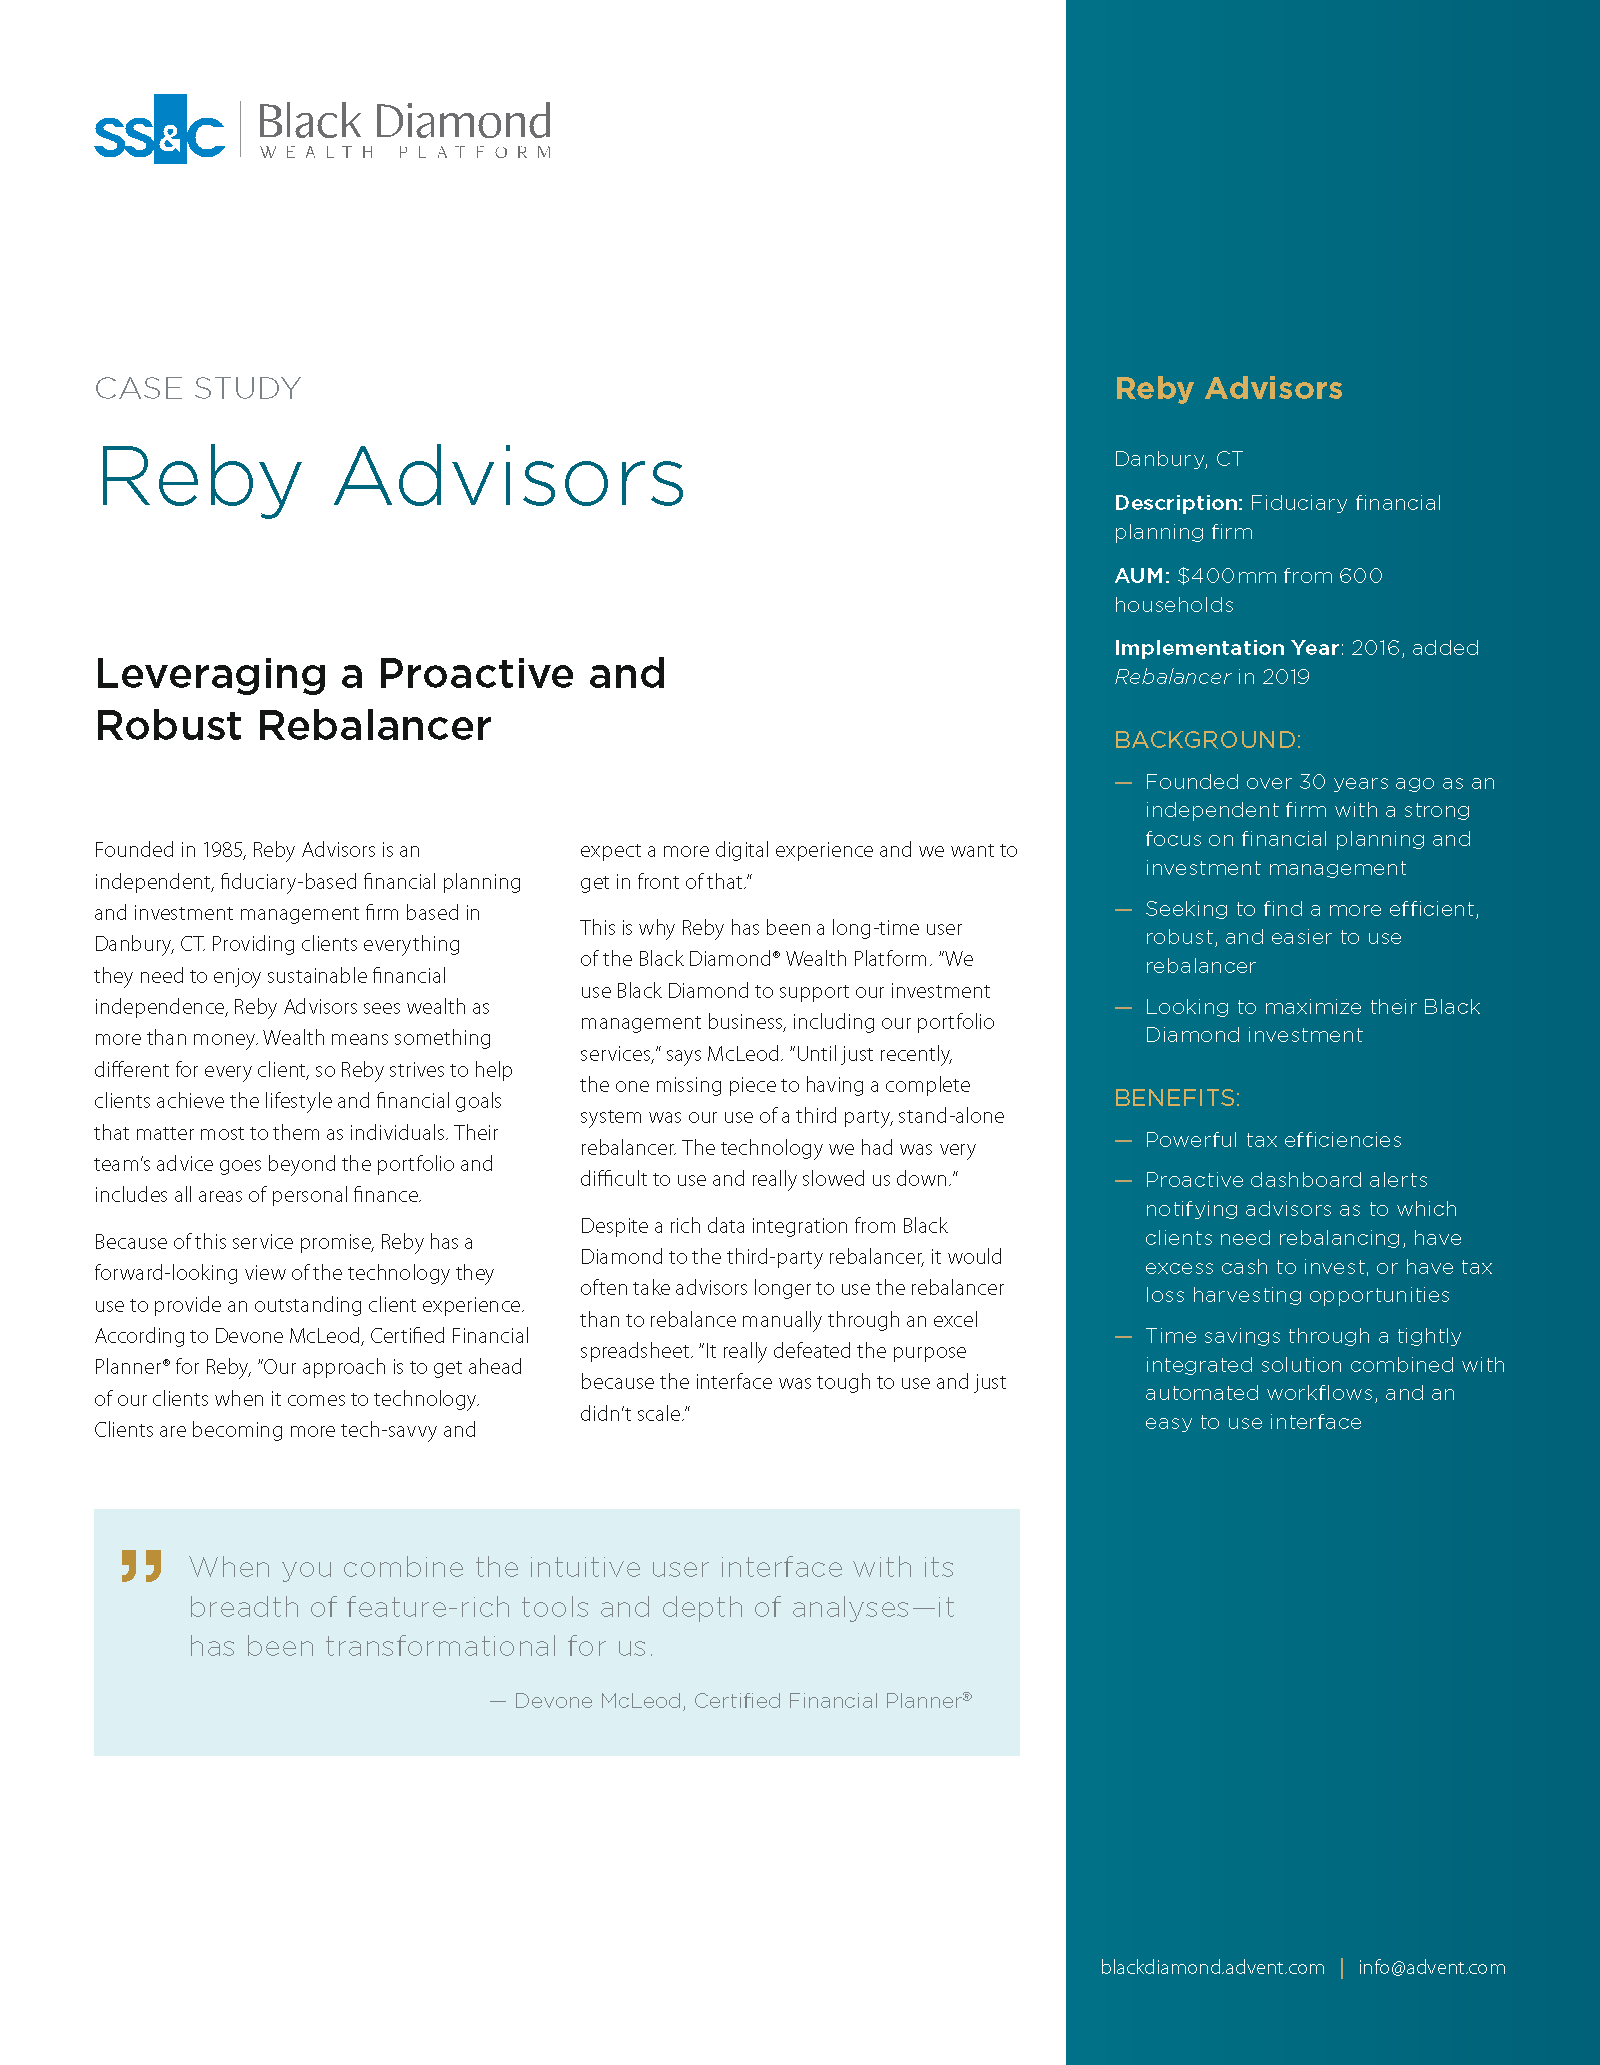 poster image for <p>Reby Advisors</p>